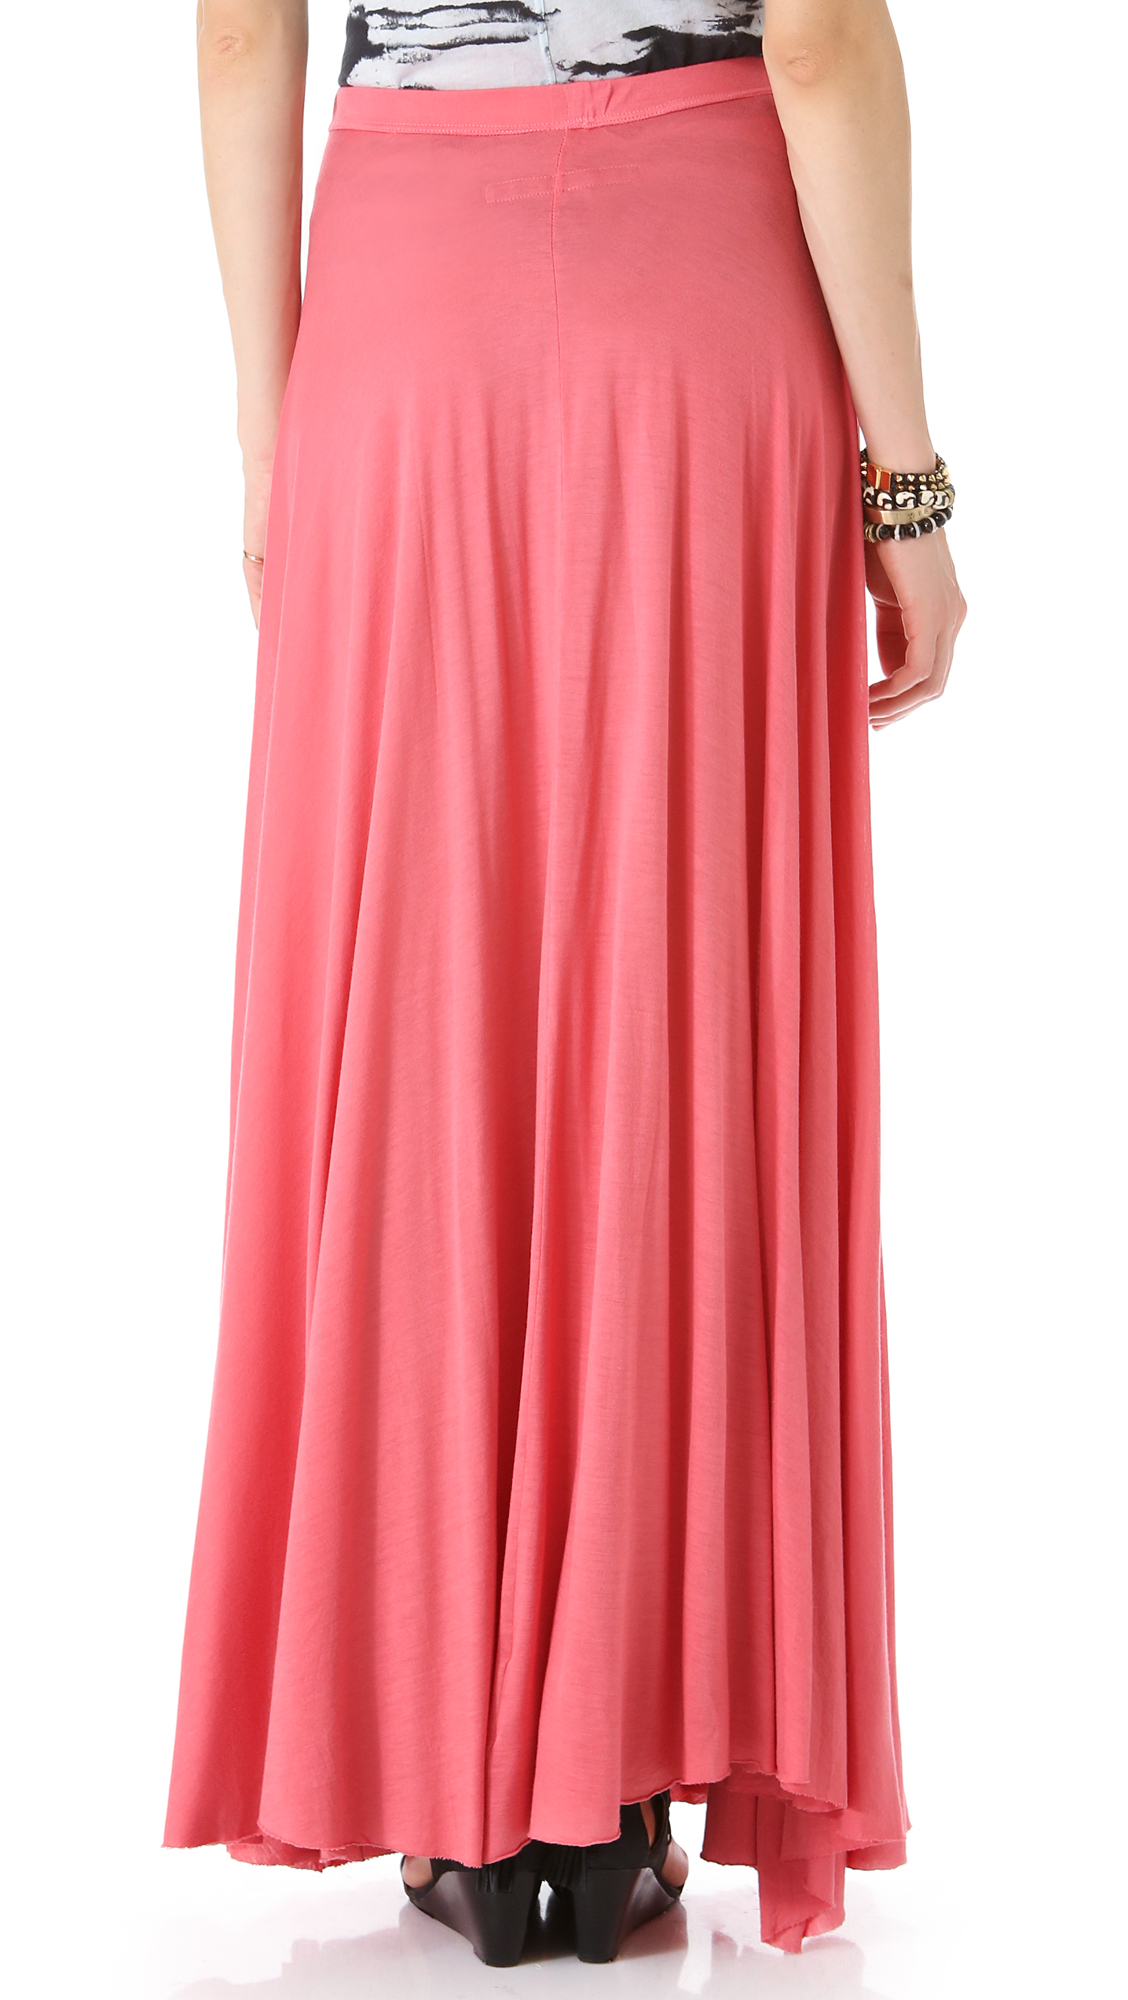 21f54eecd4 Lyst - Enza Costa Full Circle Maxi Skirt in Pink